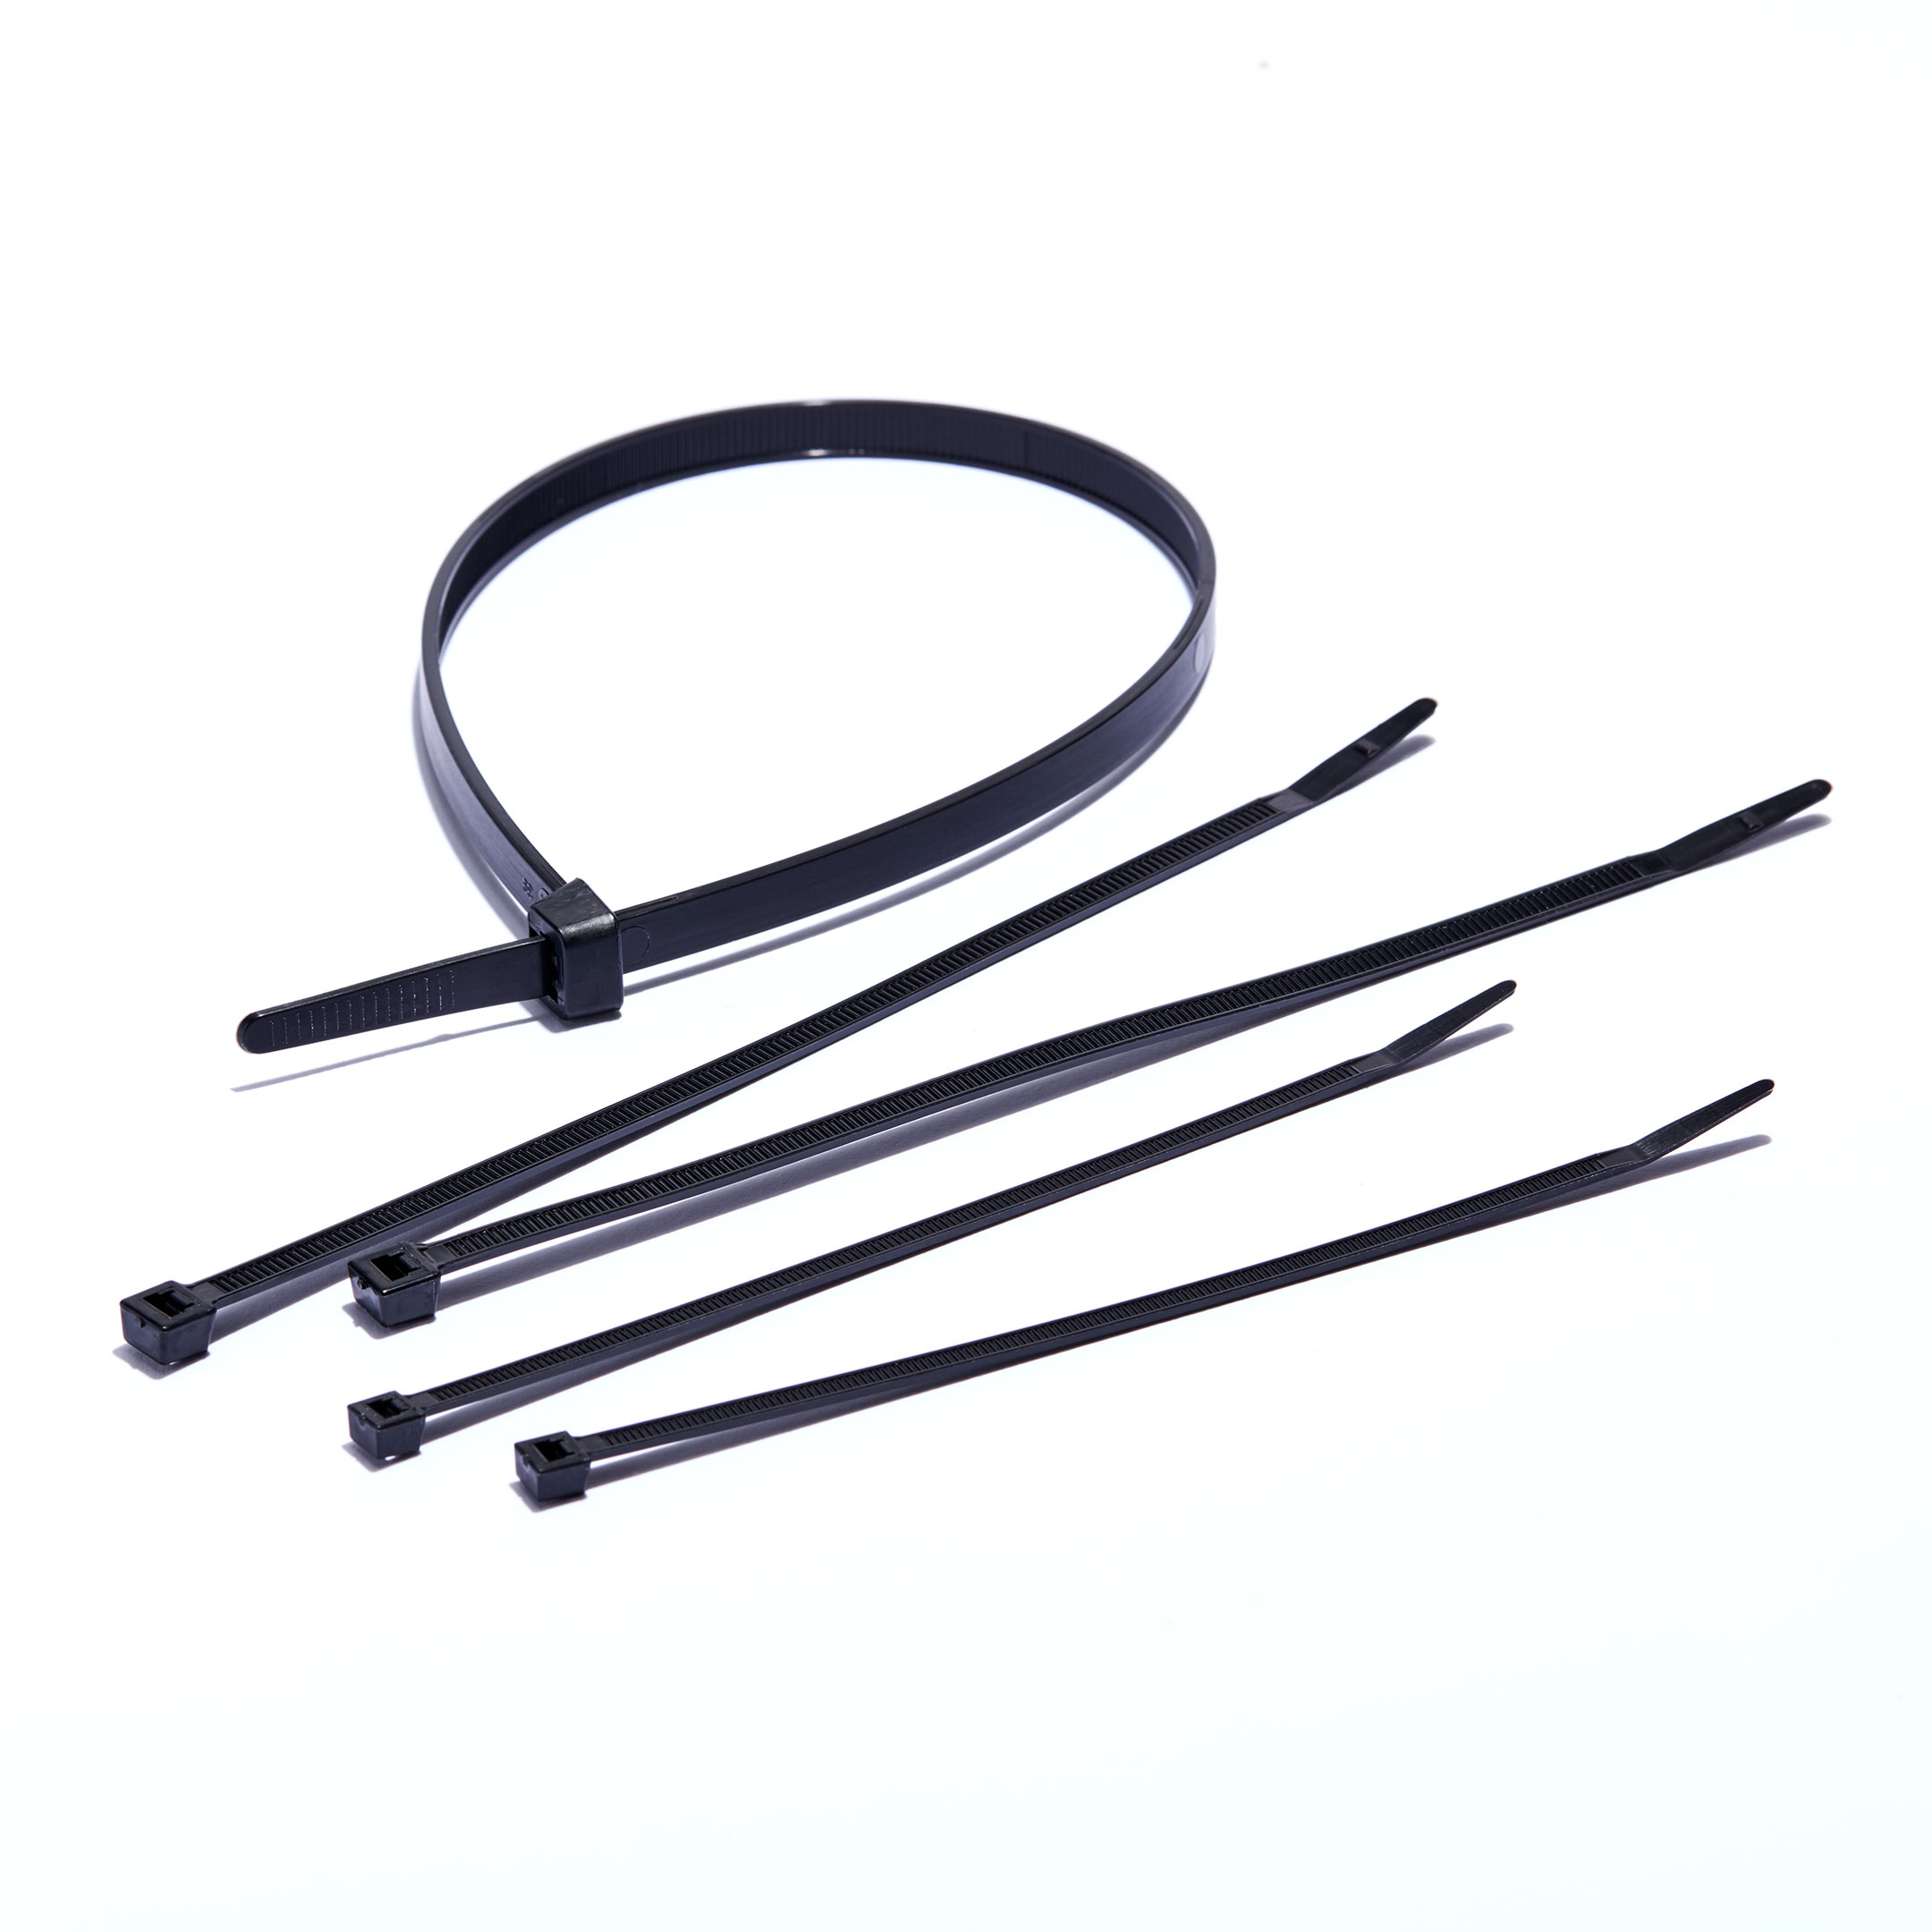 KSI Cable Ties